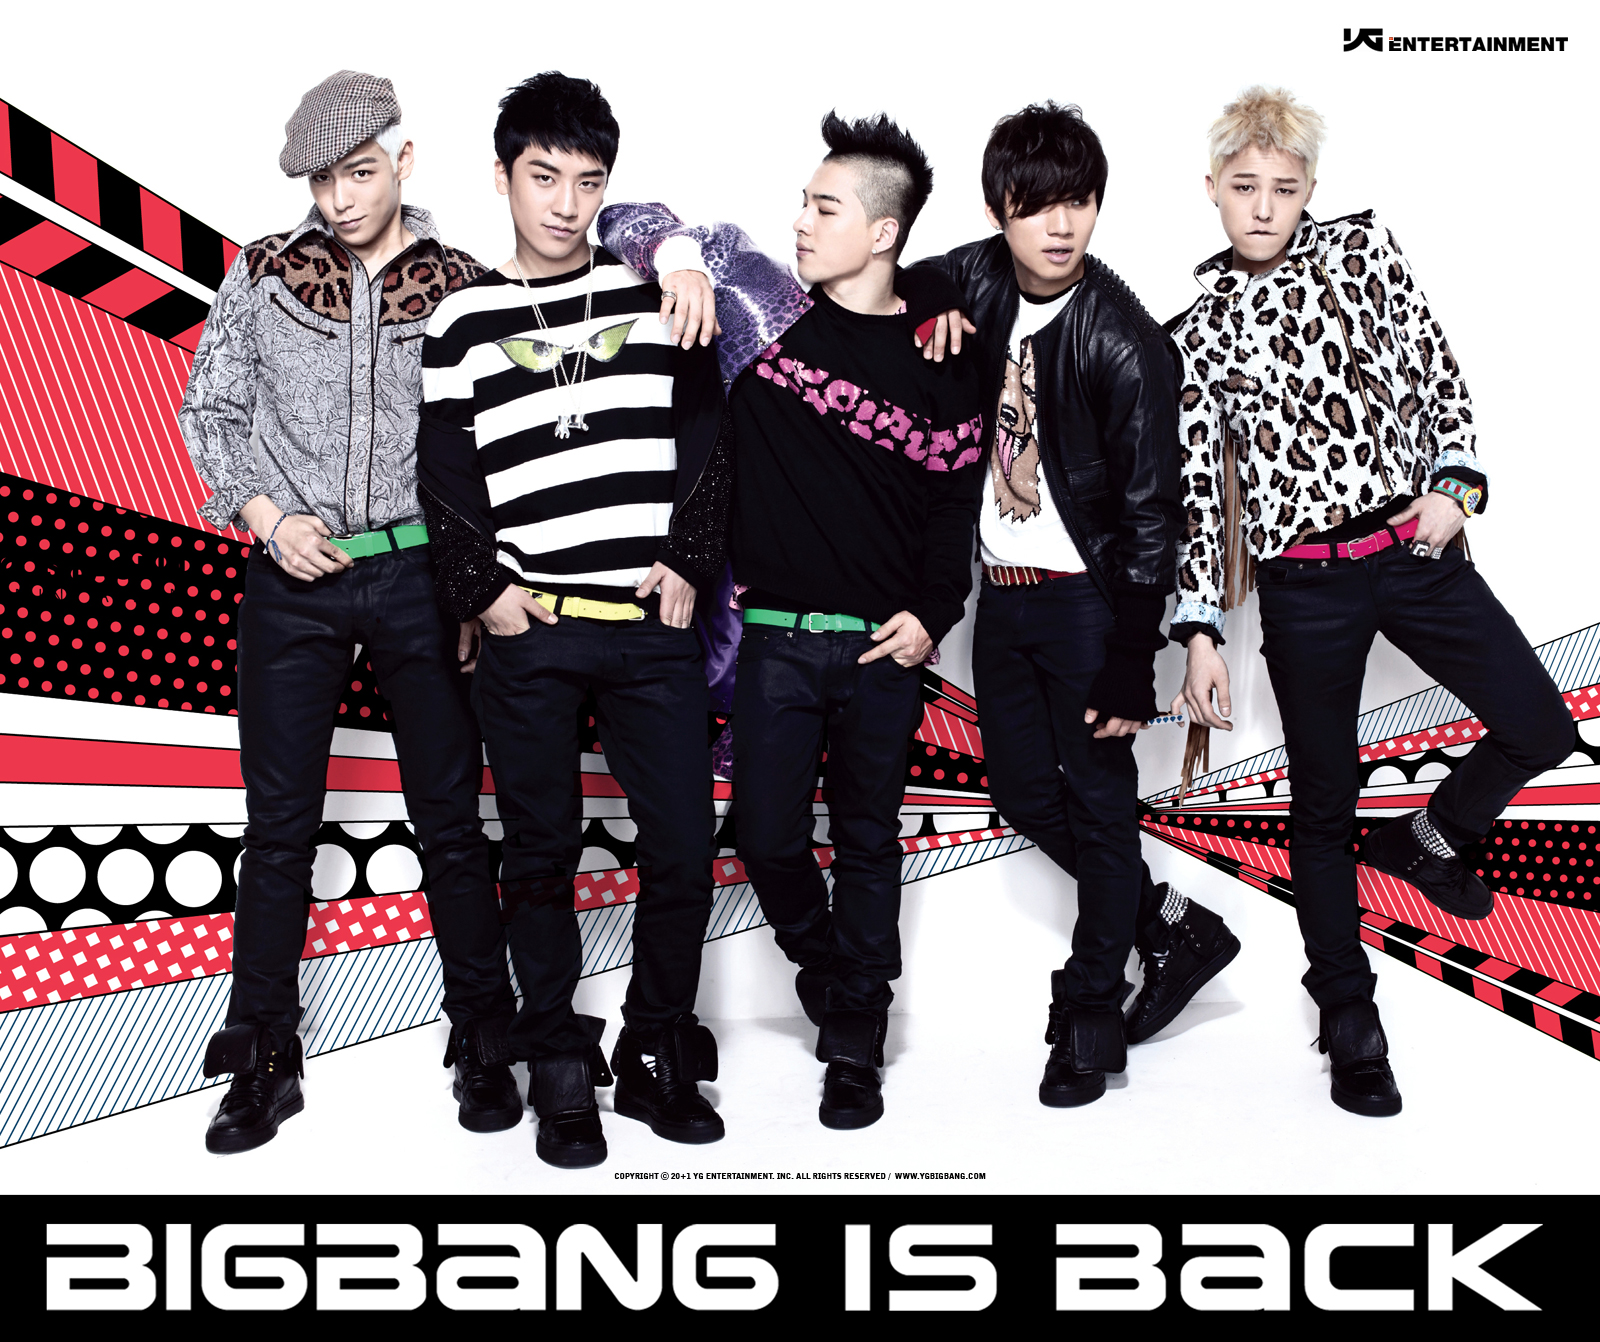 Seoulbeats' Big Bang Tonight Contest Winners